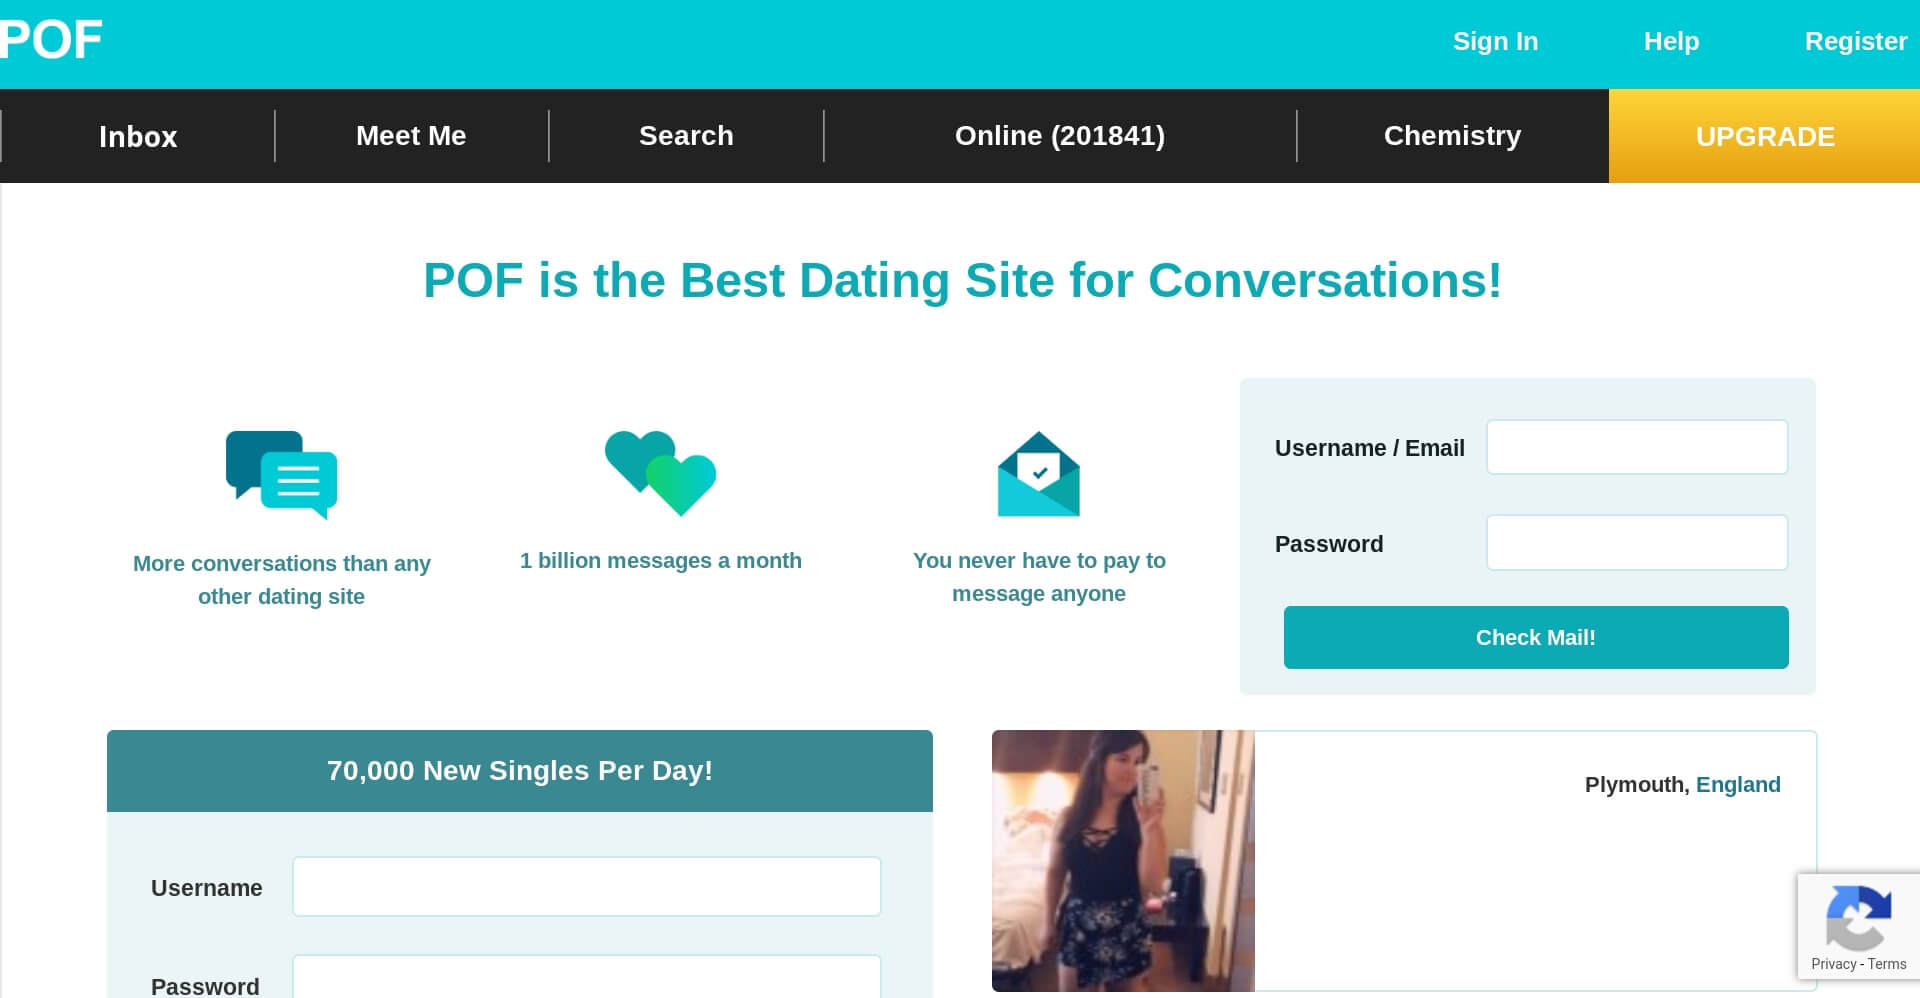 pof uk dating site review